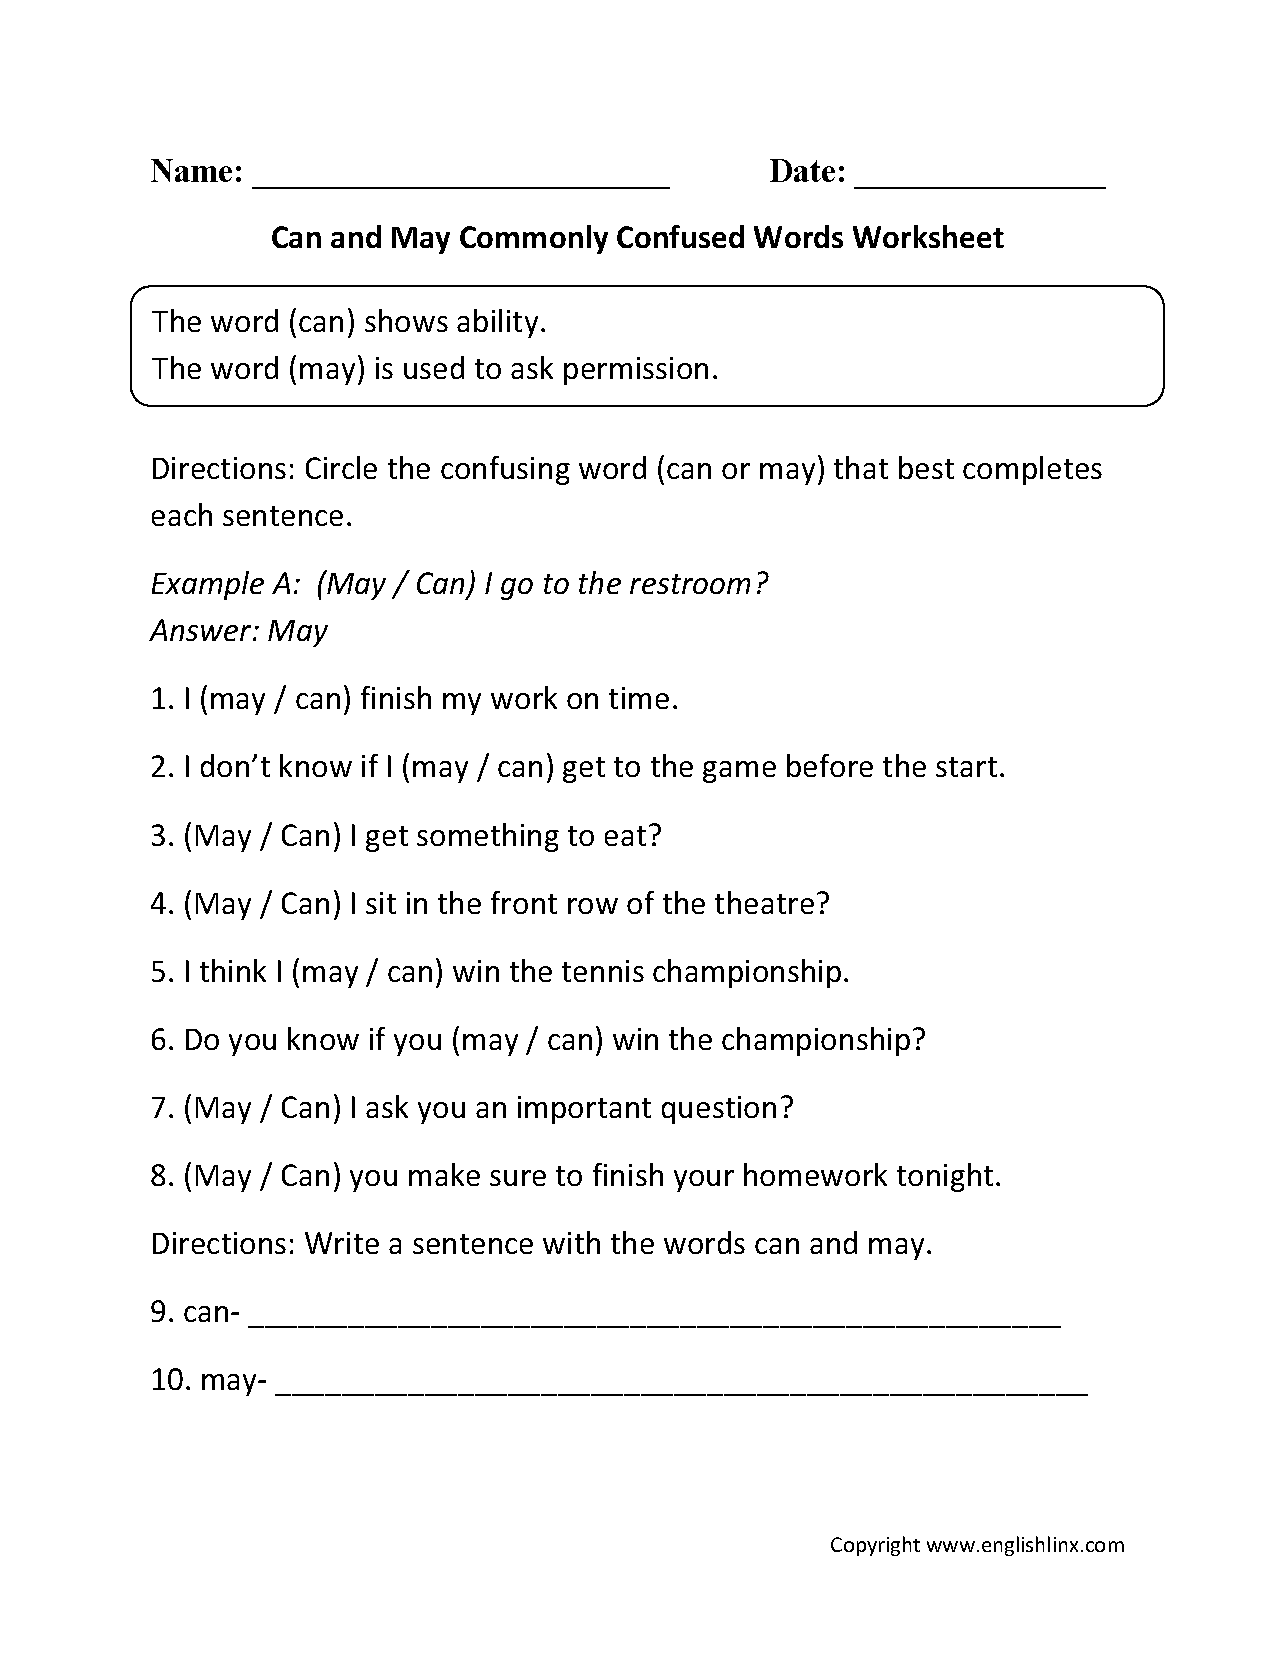 Free Worksheet Commonly Confused Words Worksheet word usage worksheets commonly confused words worksheets